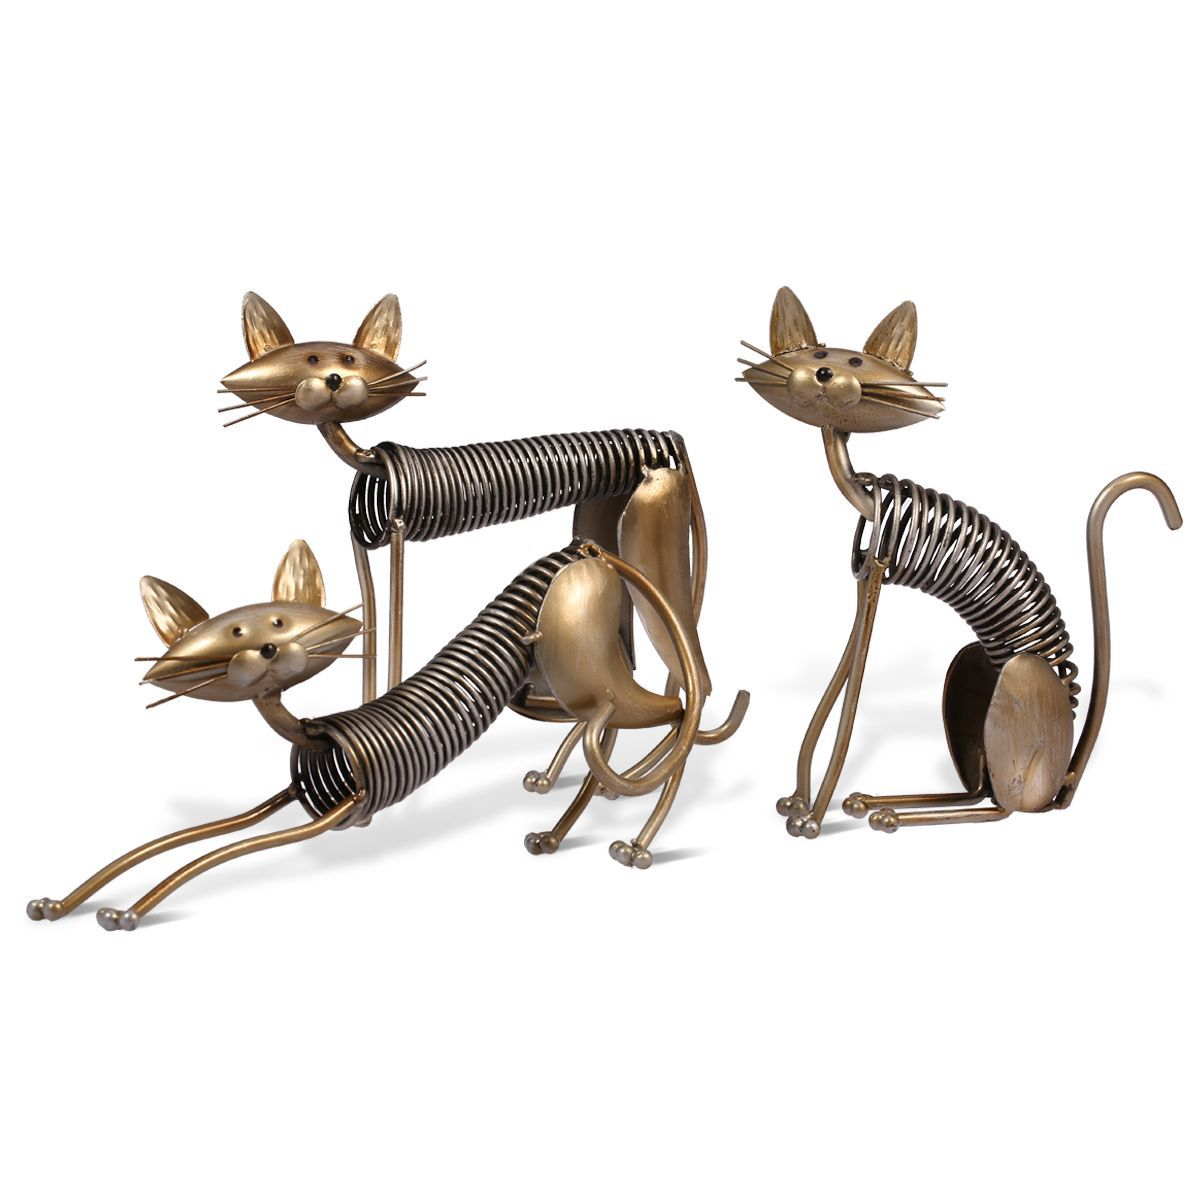 Three Cats Figurines One Set Three Kittens Handmade Metal Sculpture Collection Iron Home Decoration Accessories Creative Gift